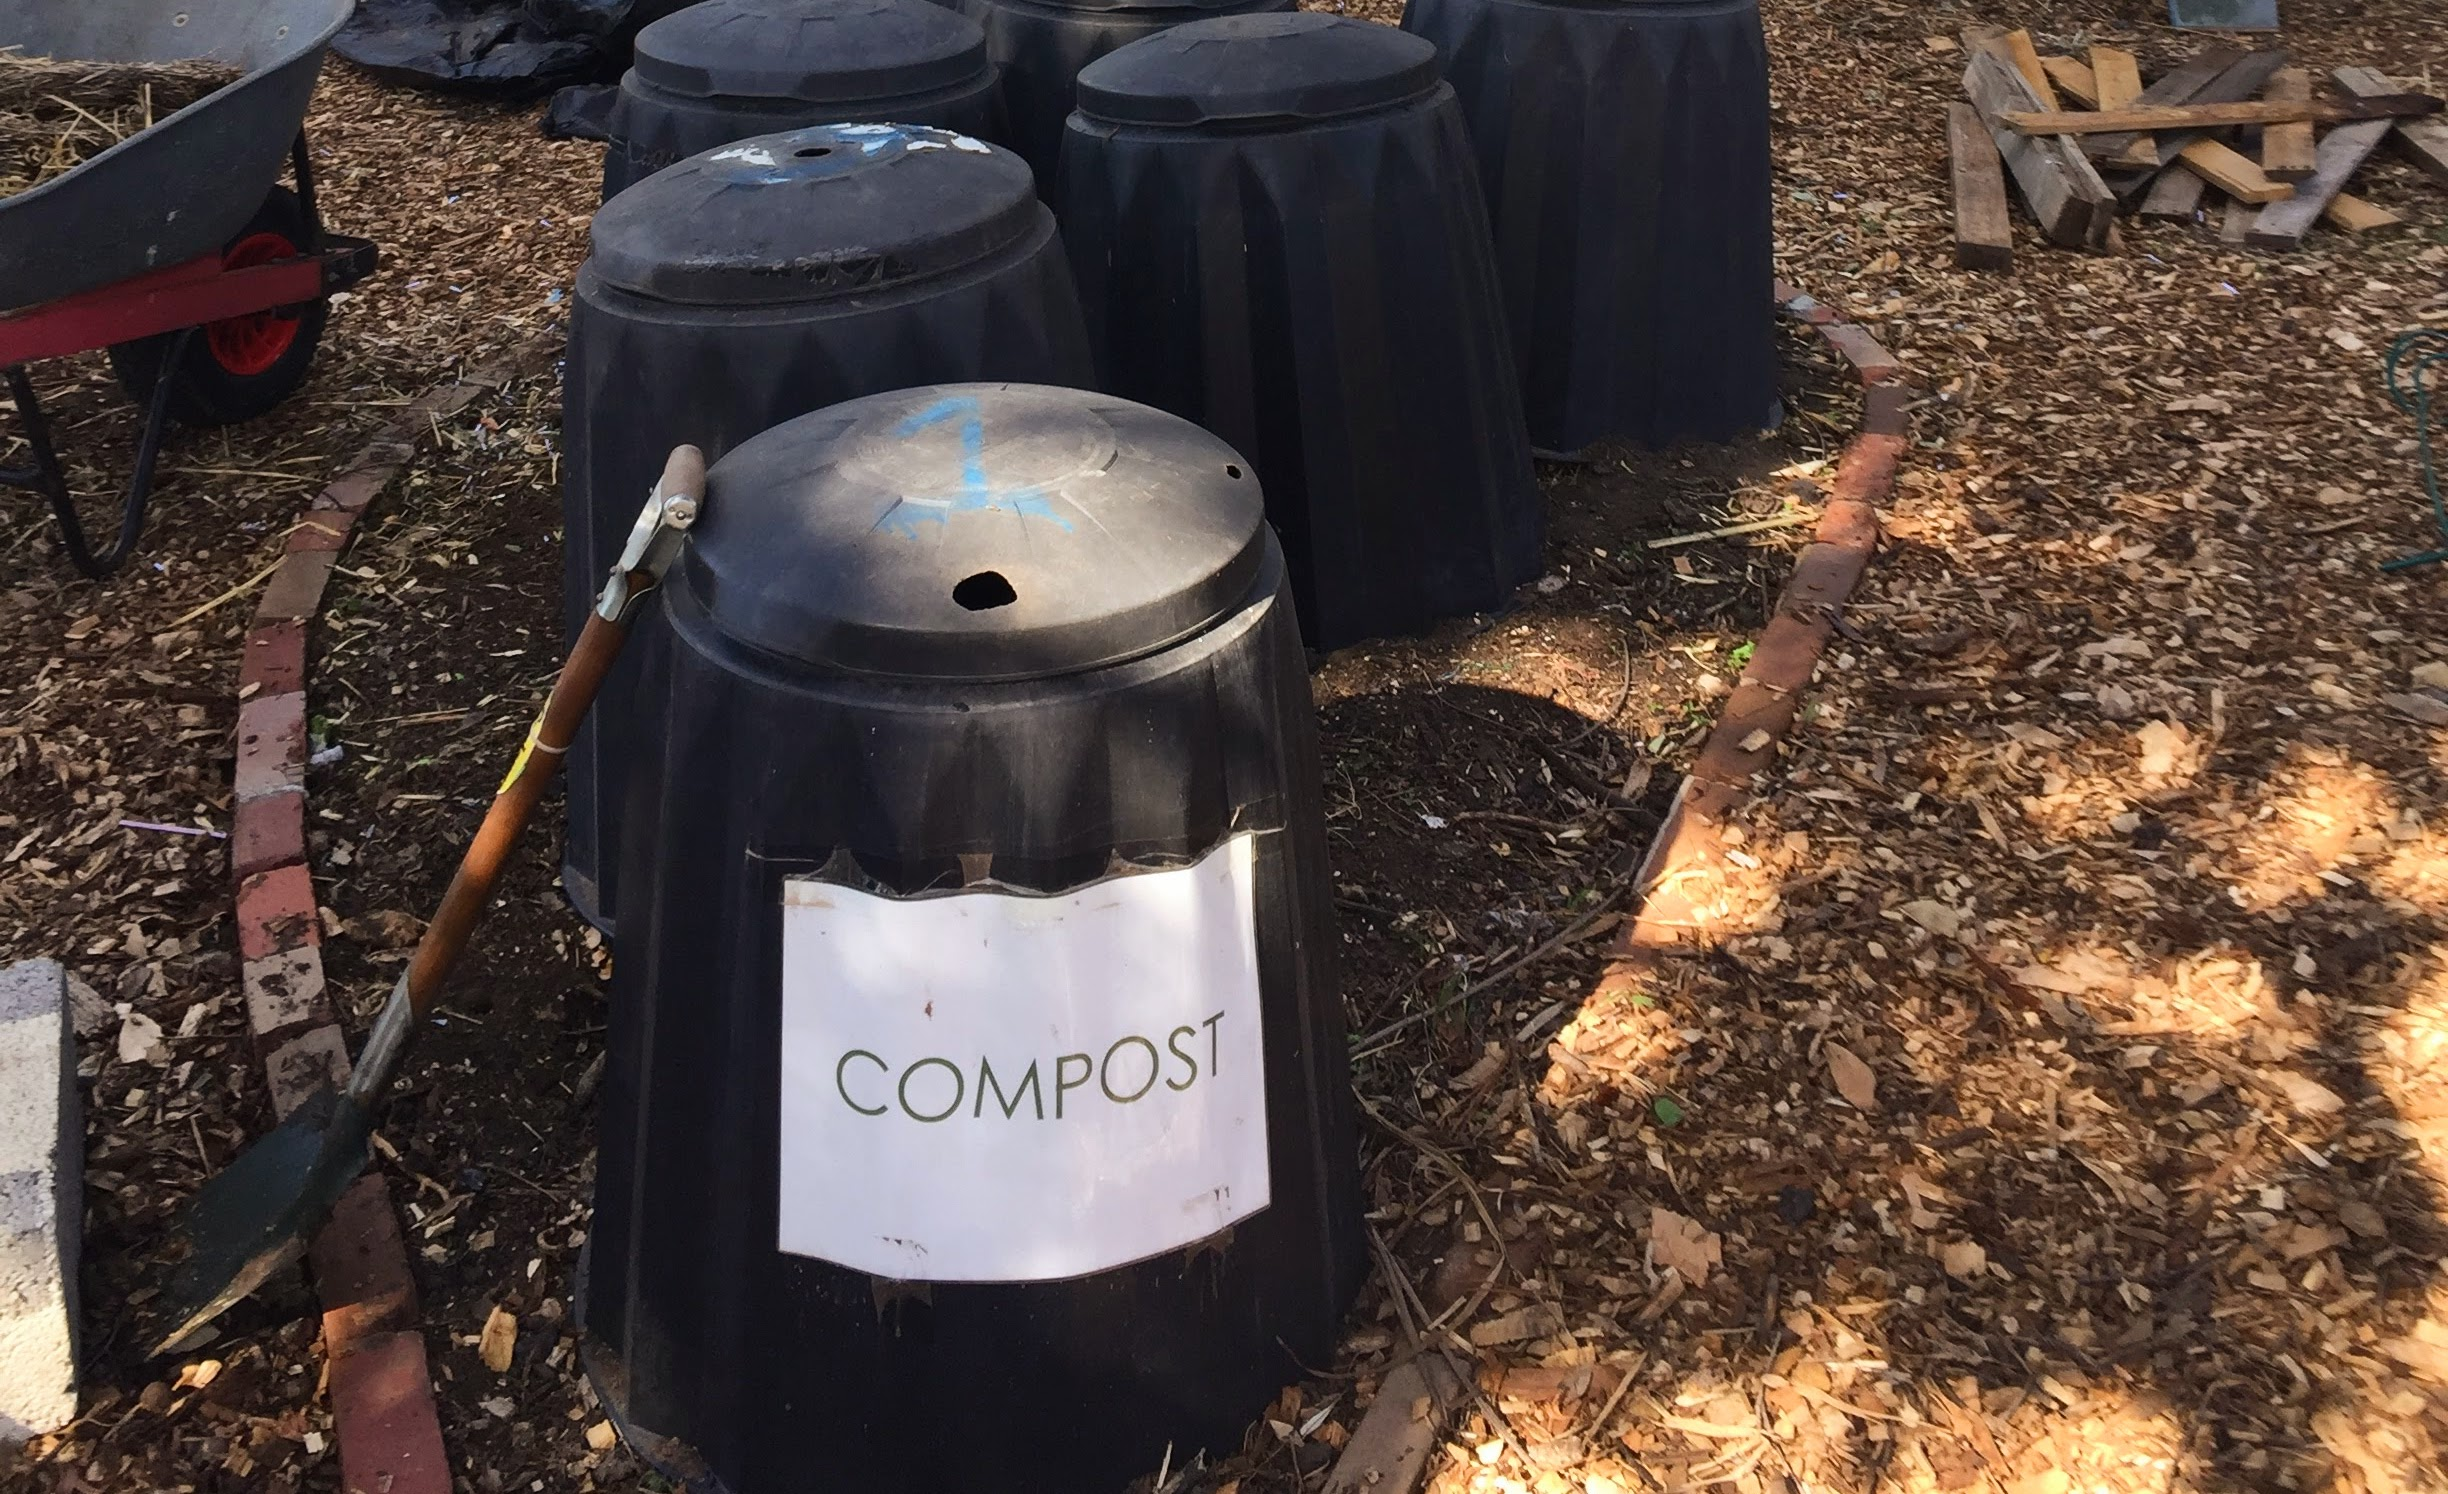 Compost bins at the Acton Community Garden Food Waste Education Hub